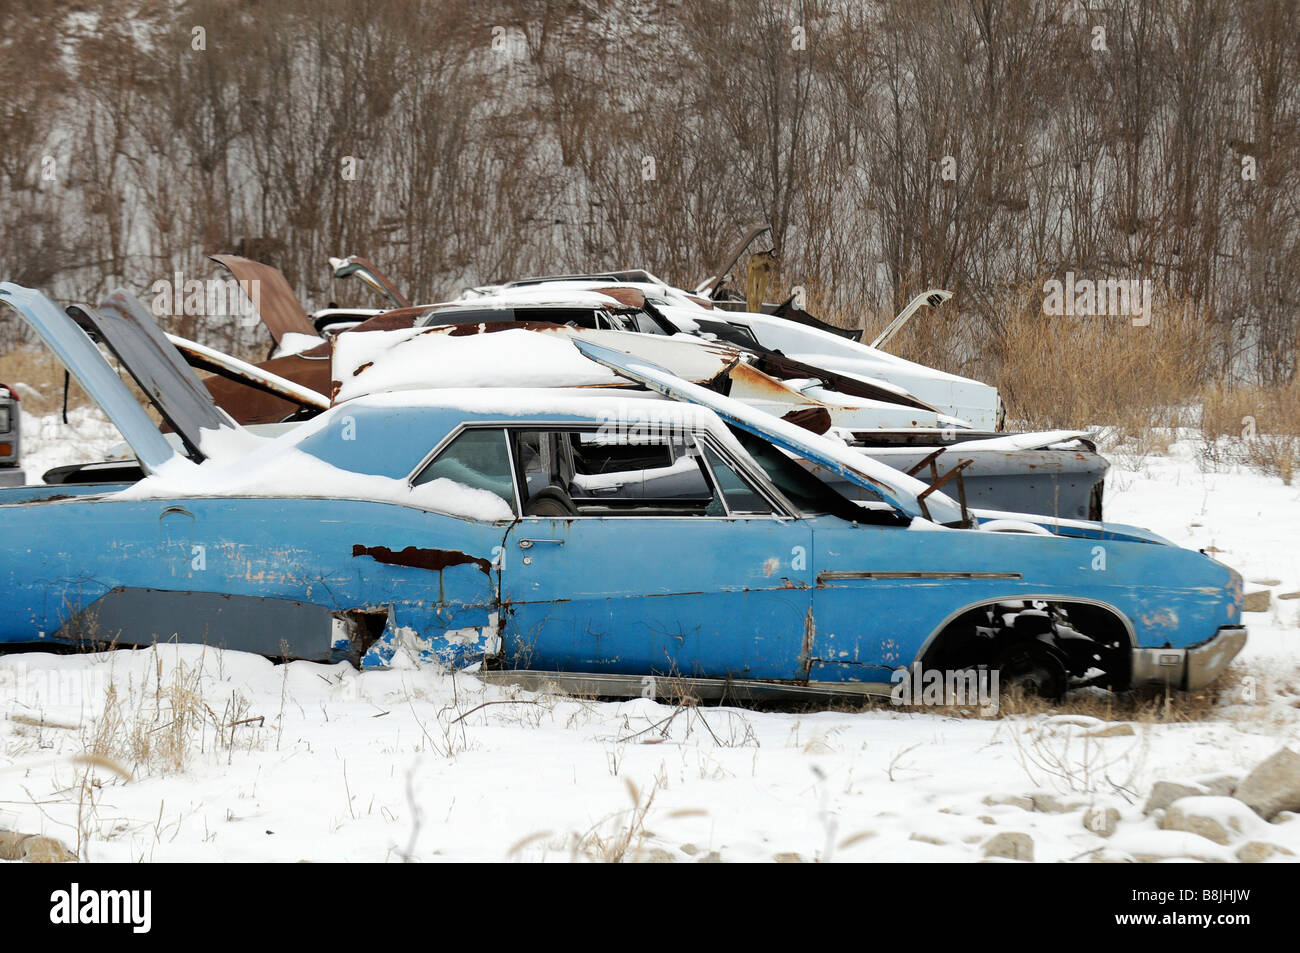 Old cars in a snow covered junk yard Stock Photo: 22536609 - Alamy